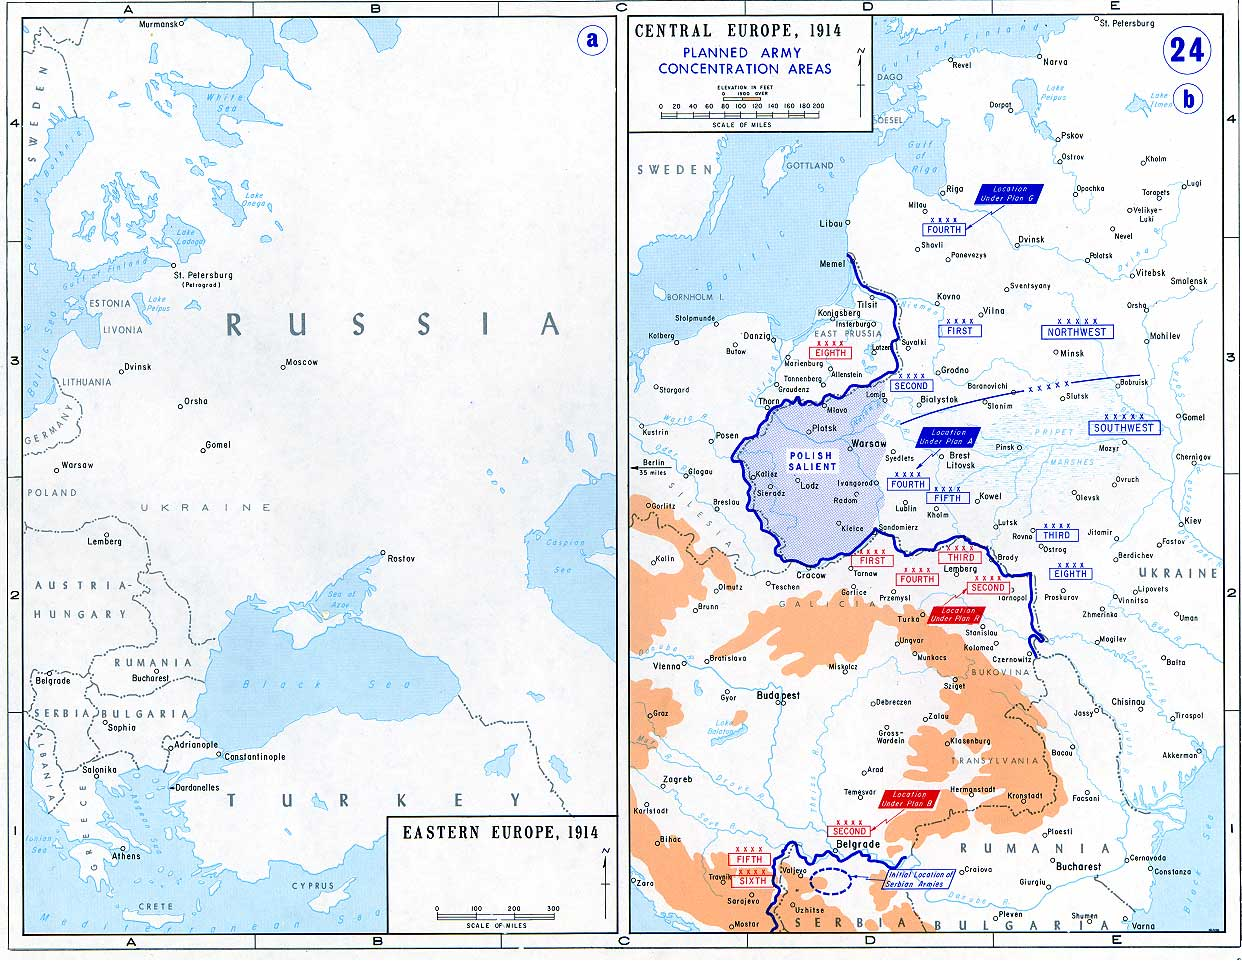 Maps of the great war 24 eastern europe 1914 and planned army concentration areas in central europe 1914 gumiabroncs